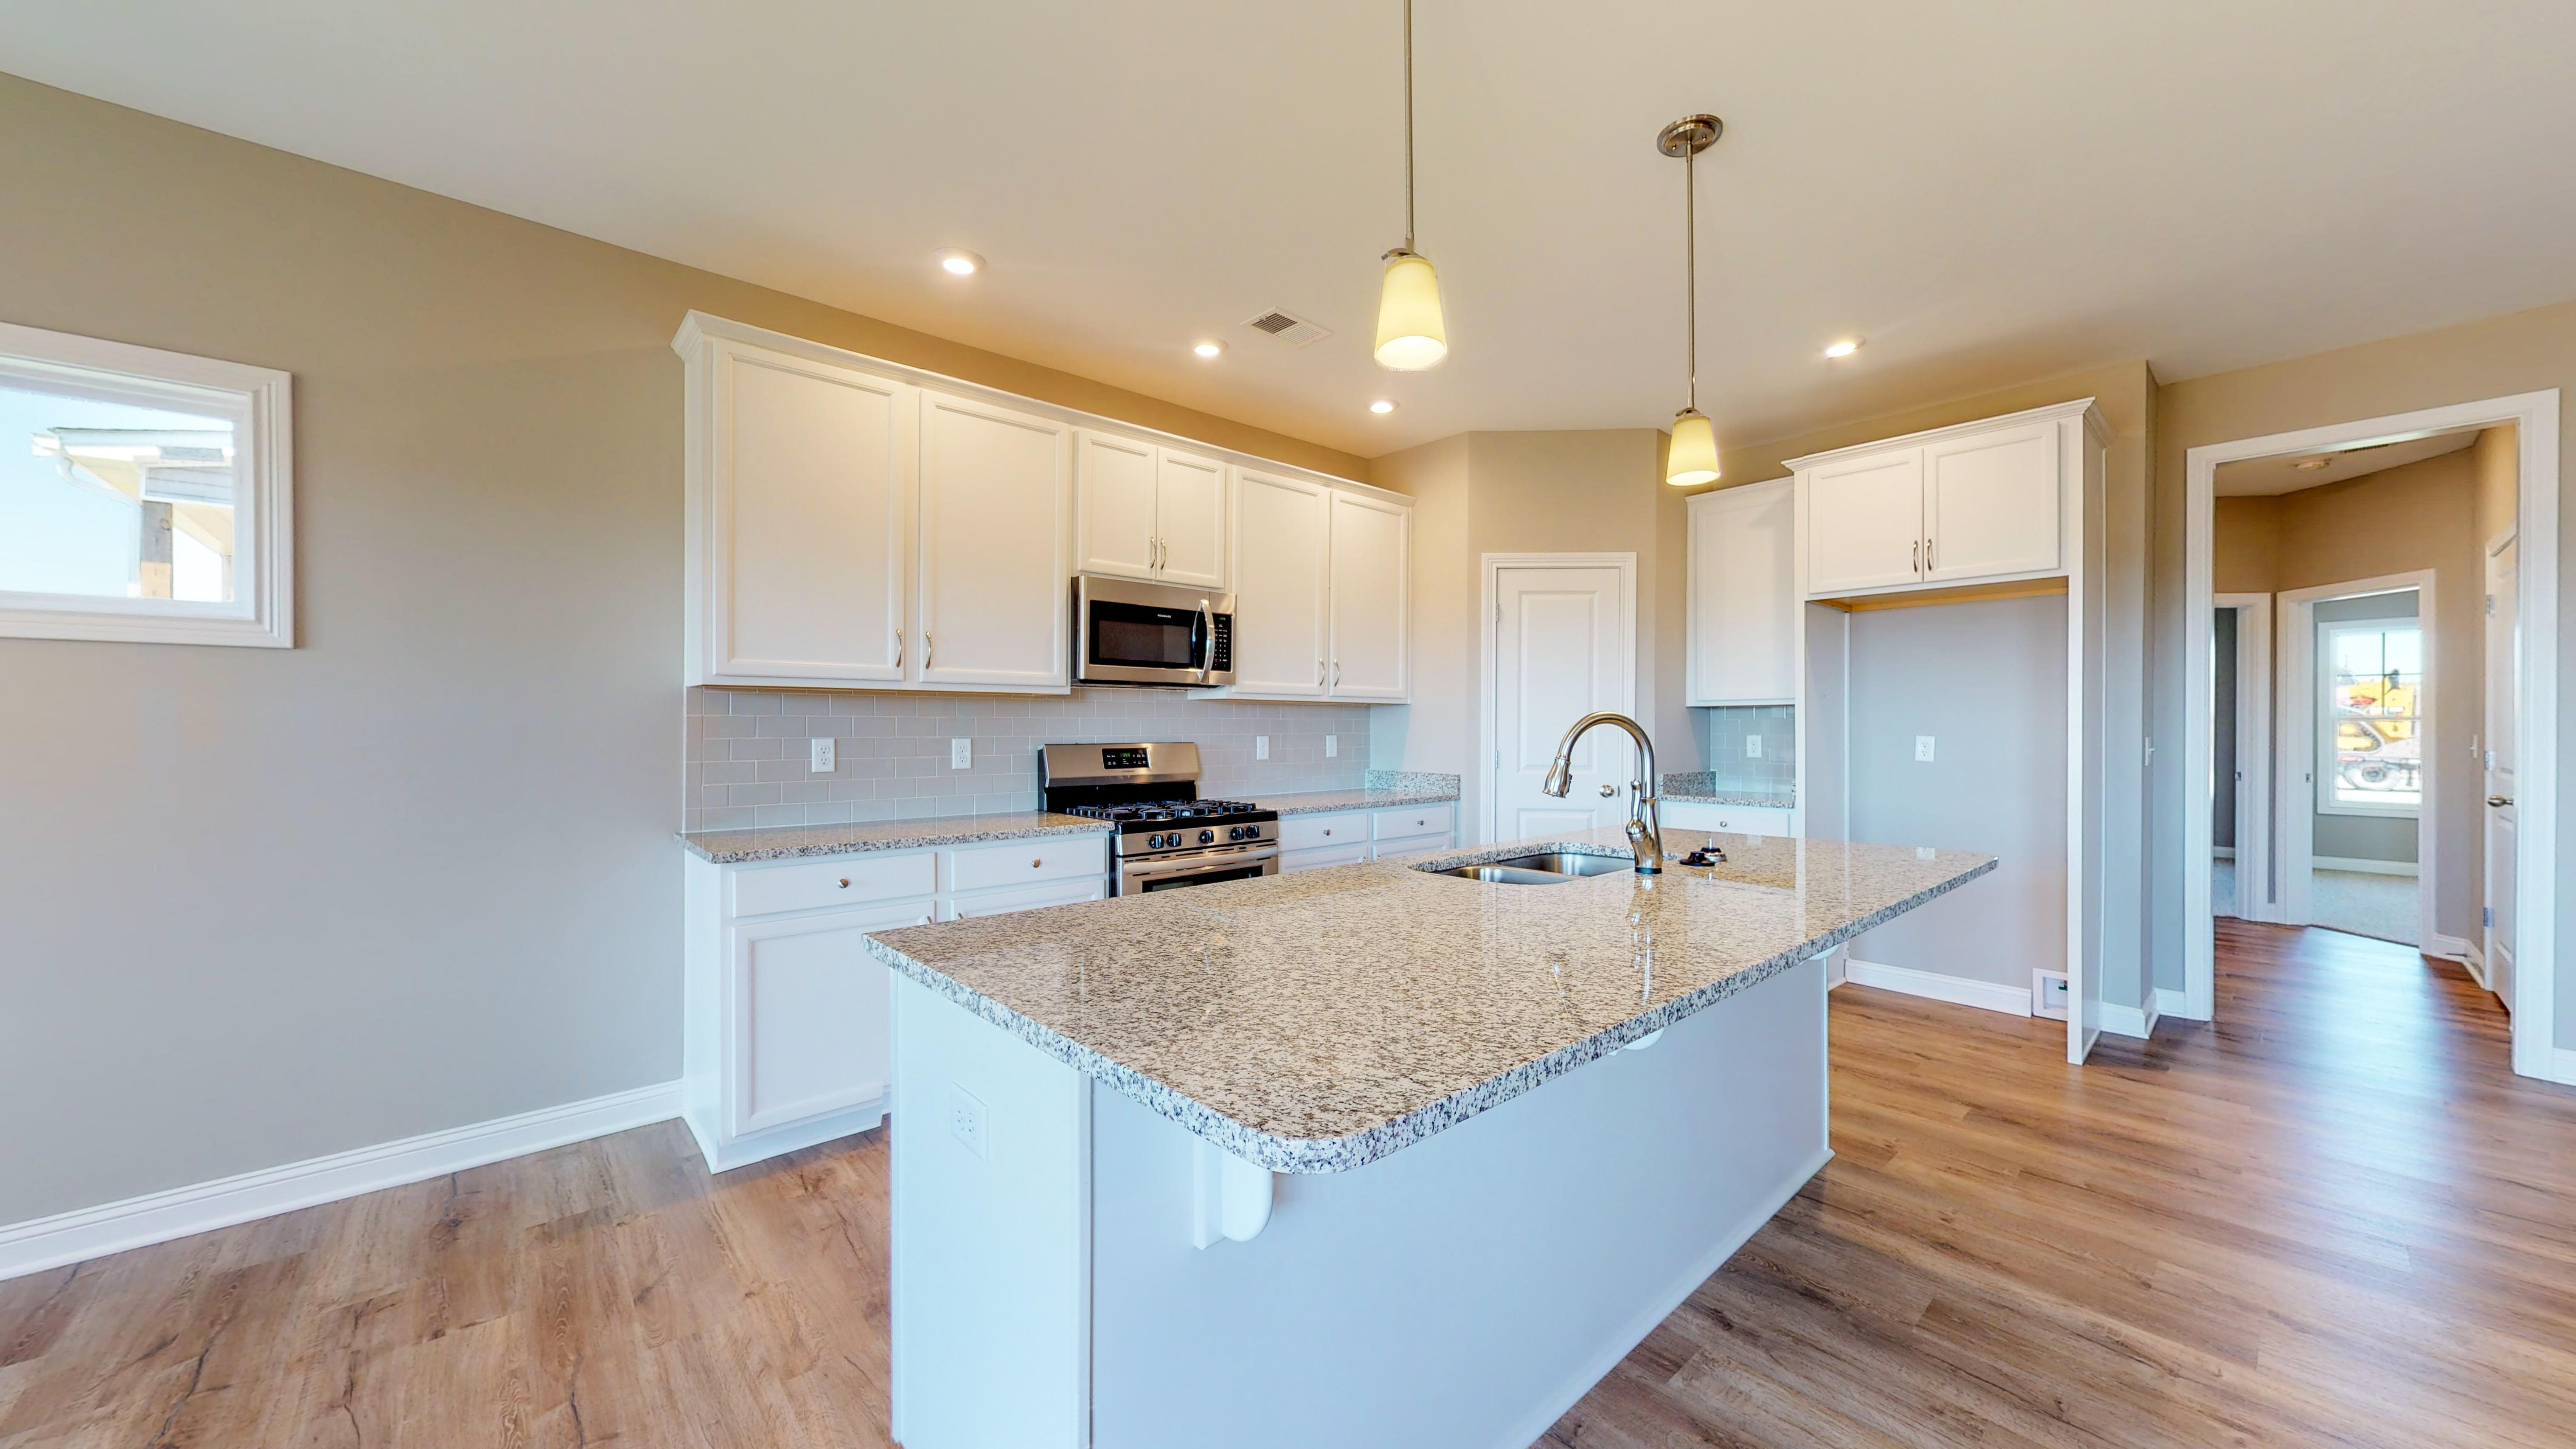 Kitchen featured in The Barbara - 3rd Car By James Monroe Homes in Lexington, KY